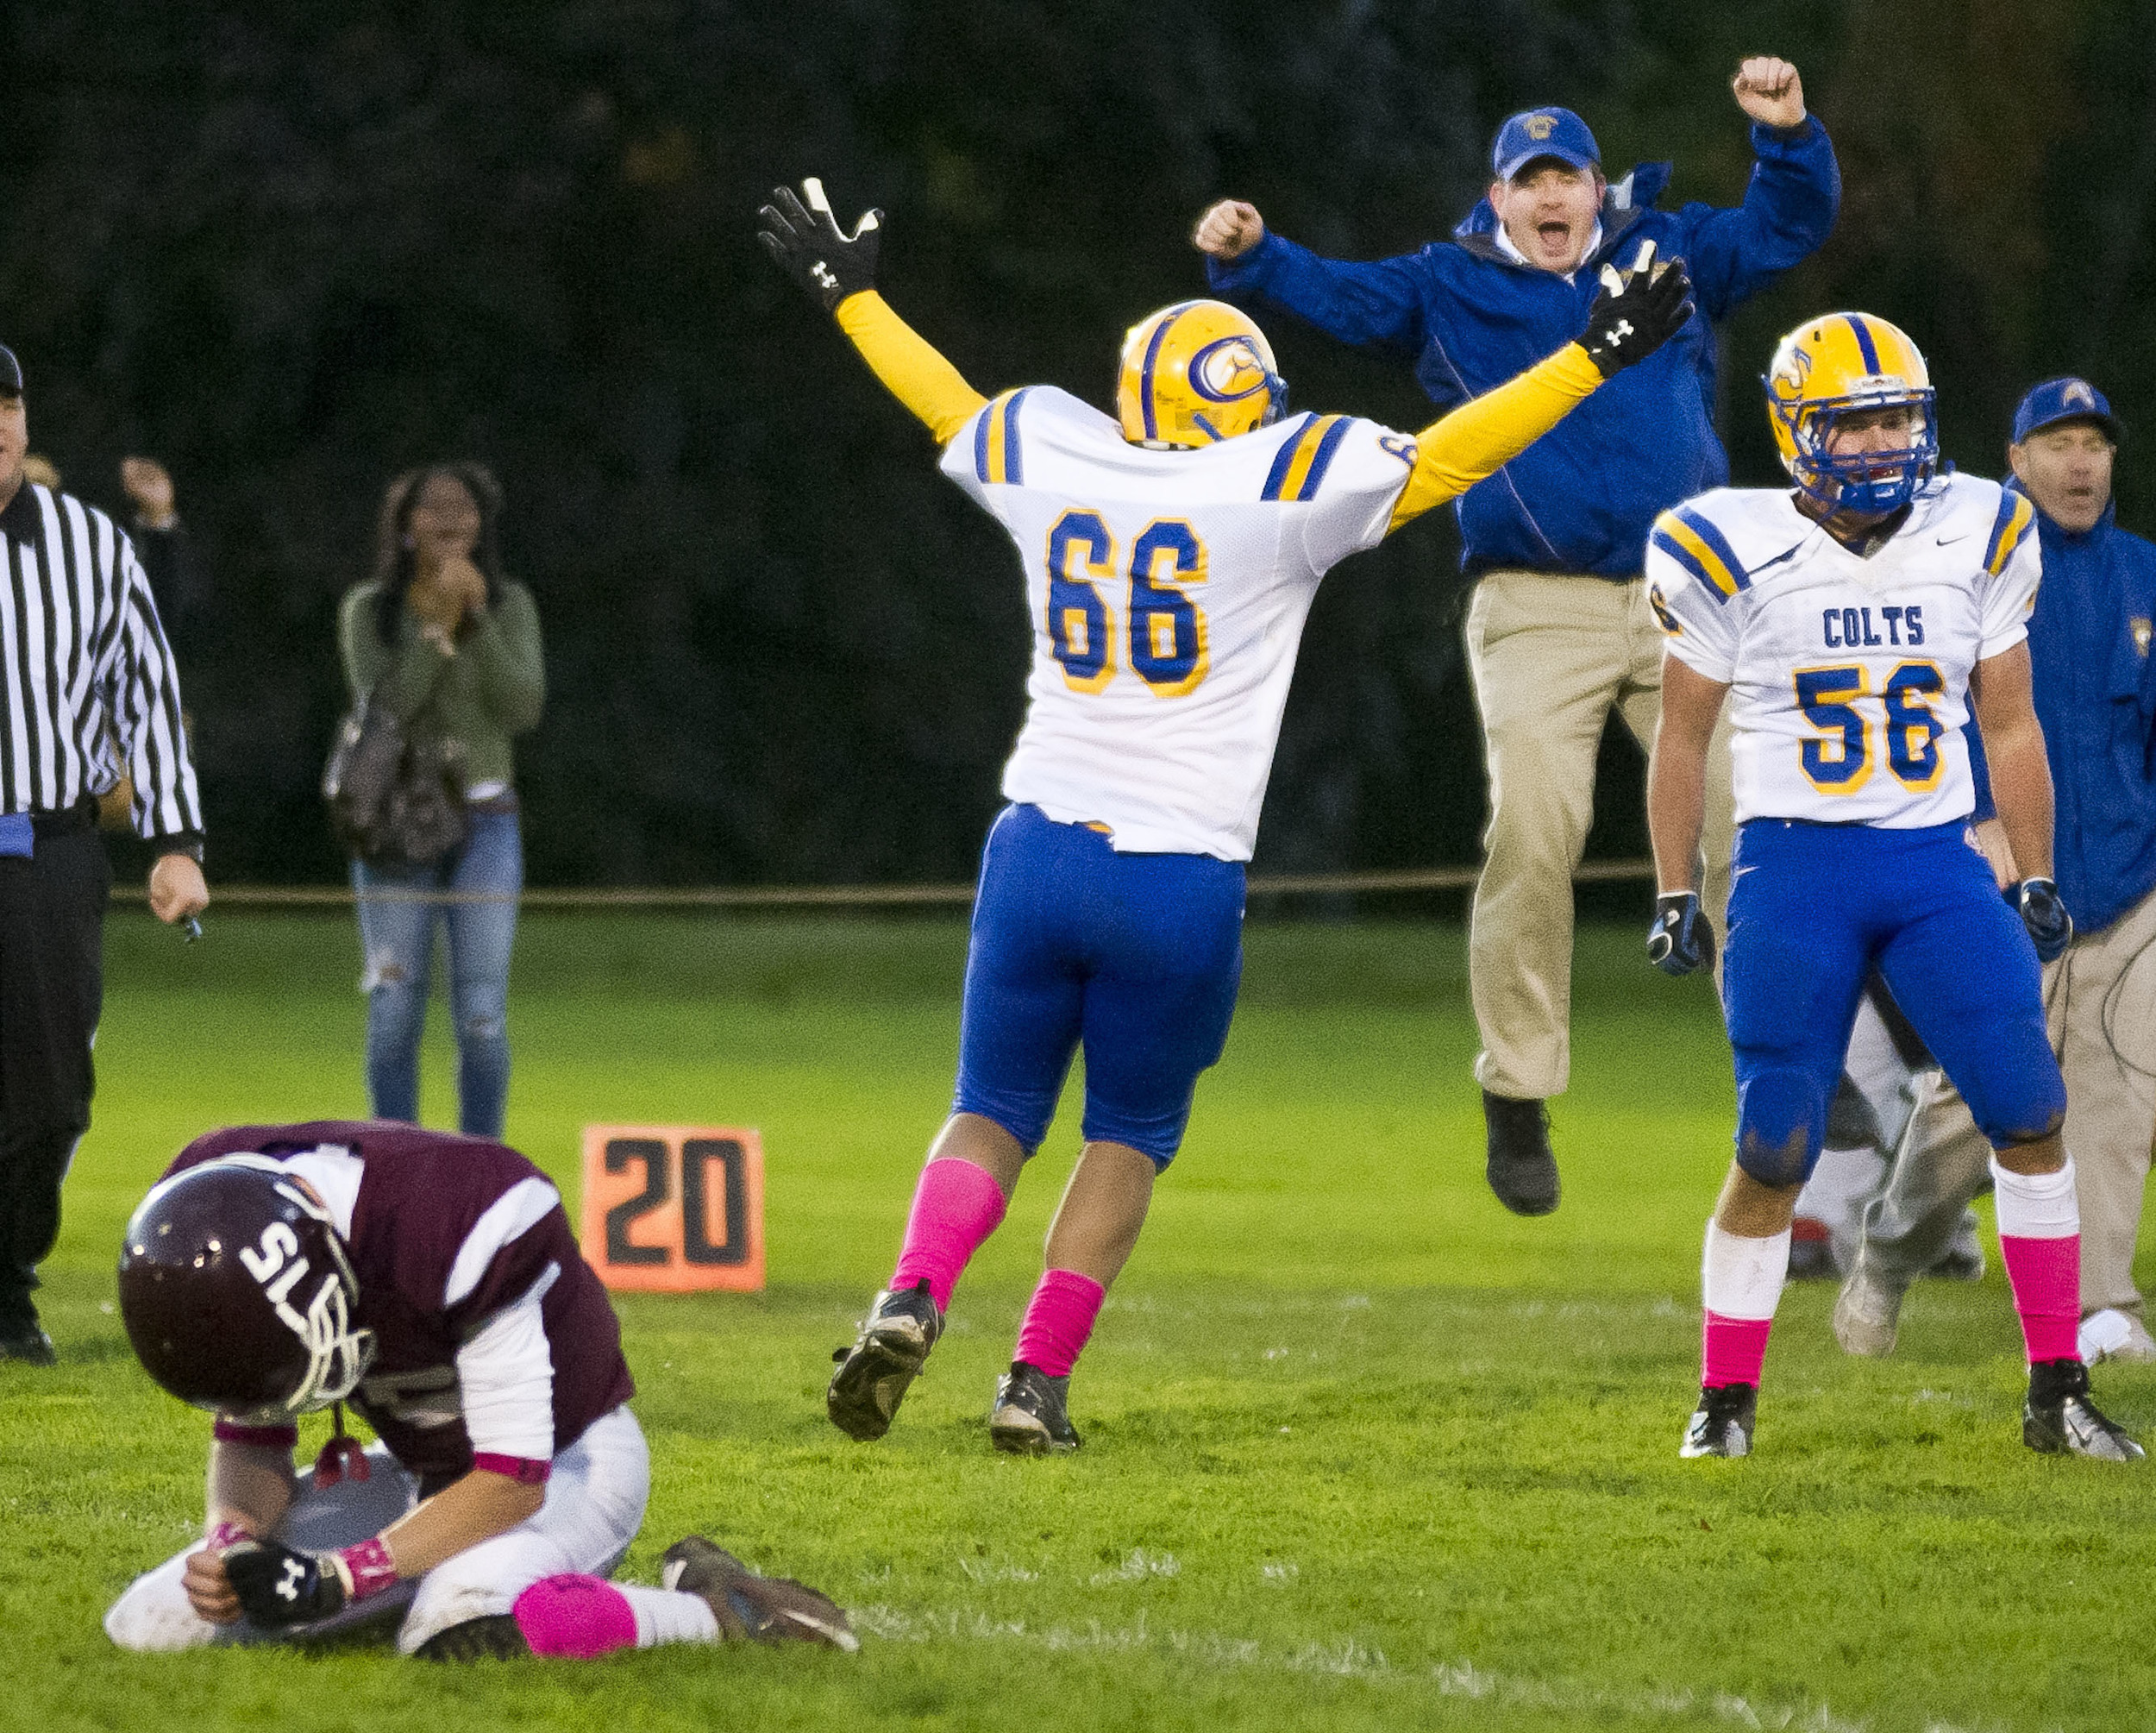 The Chicopee Comprehensive Colts prevailed 16-14 over the Amherst Hurricanes in Amherst, Massachusetts.